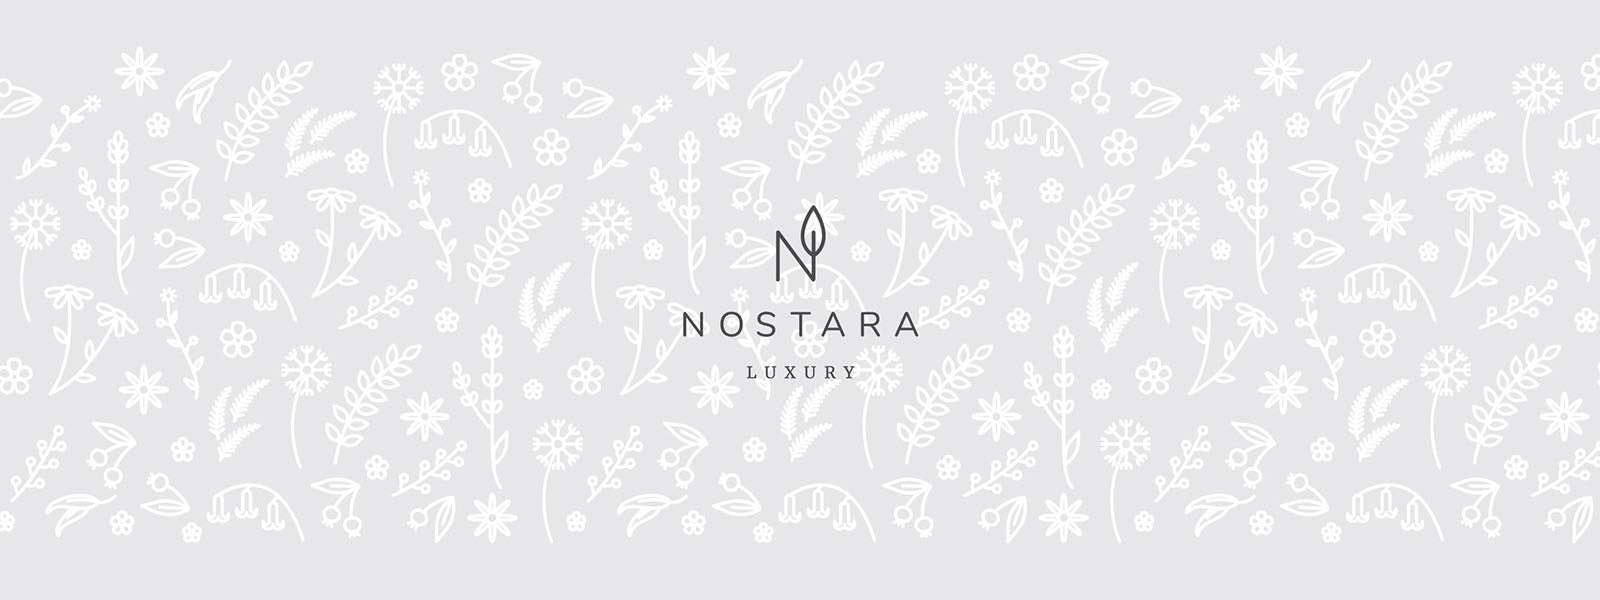 Nostara Home Fragrance motif banner with logo